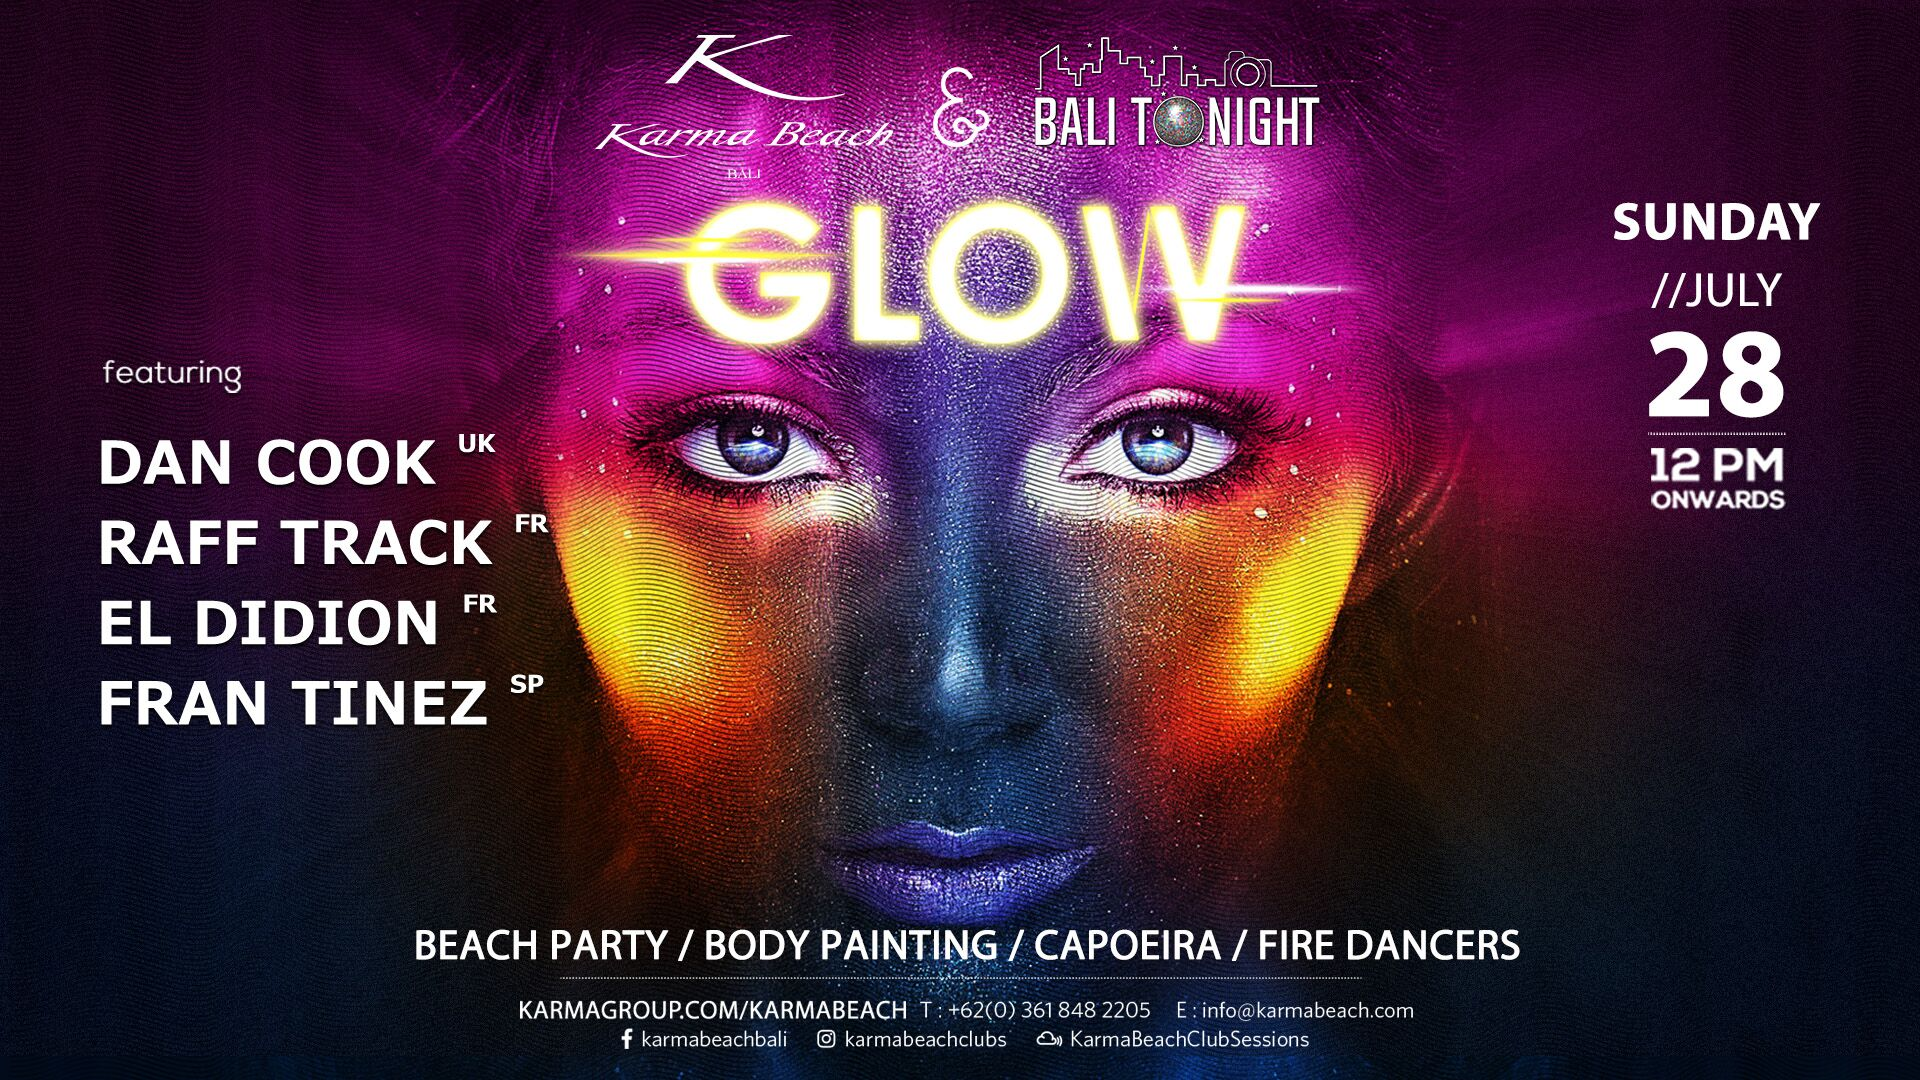 http://highend-traveller.com/glow-returns-to-karma-beach-bali-for-2019/